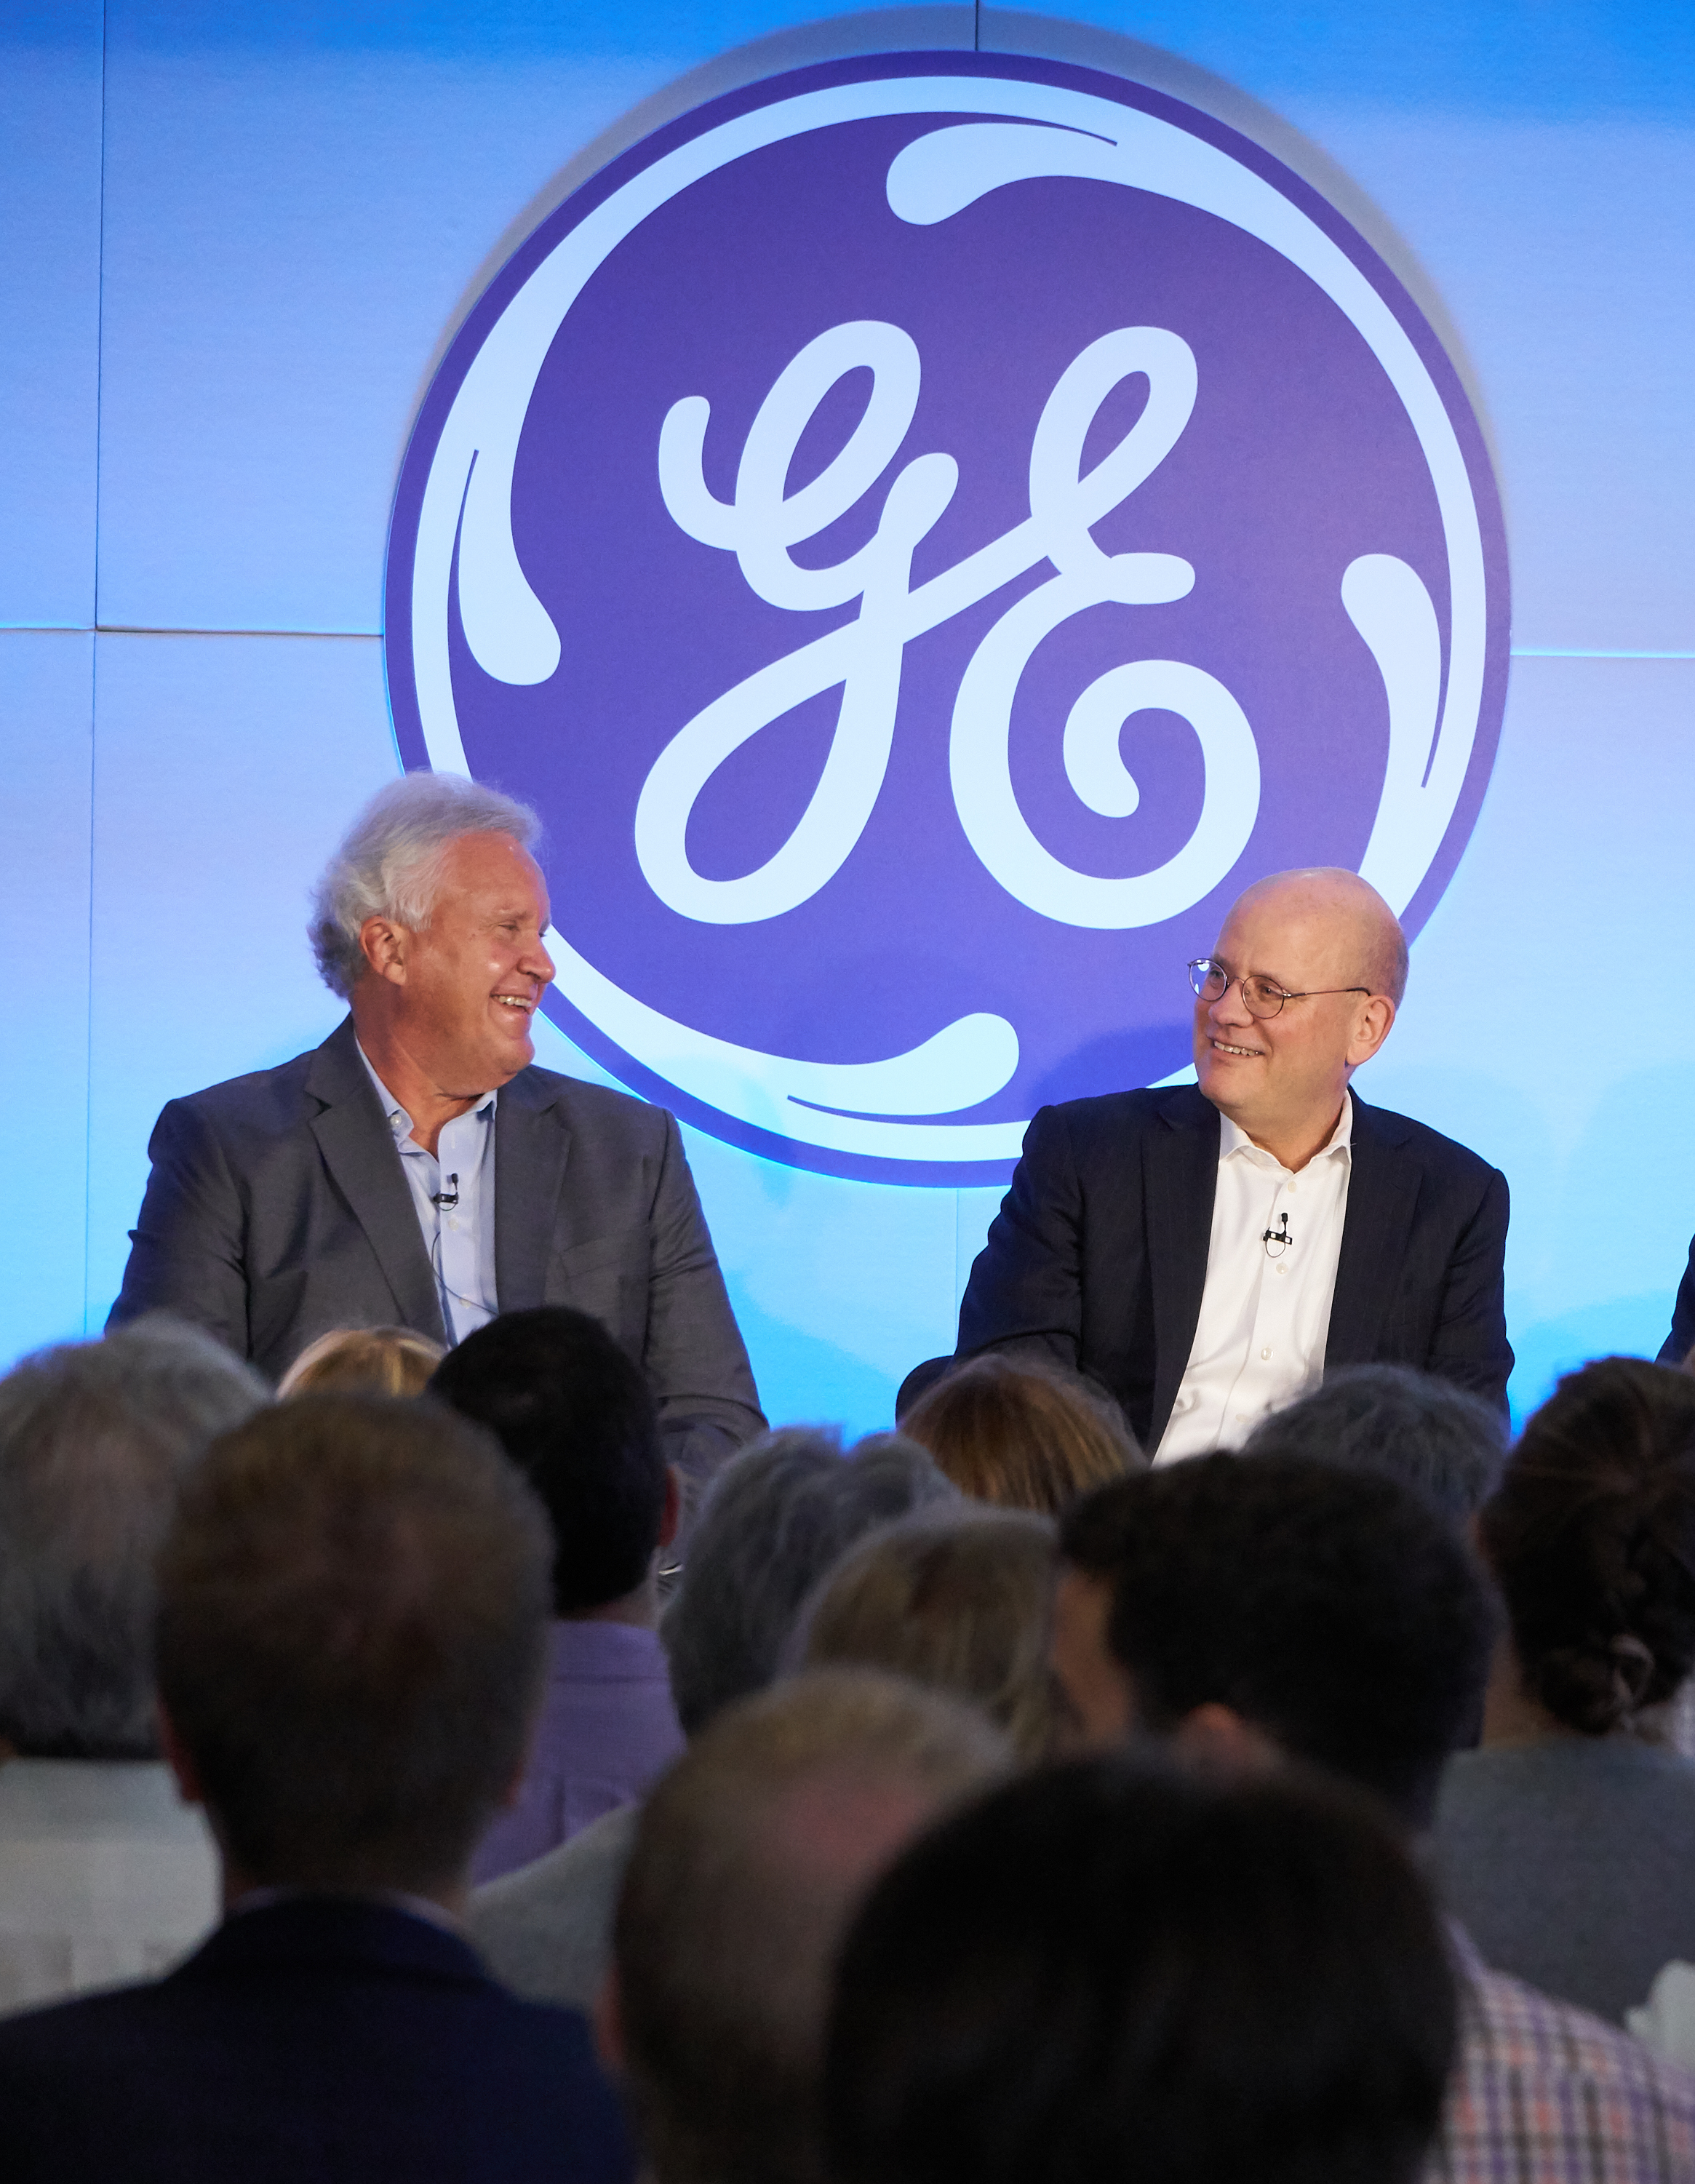 Boston, MA: Jeff Immelt, GE chairman and CEO, and John Flannery, CEO at GE Healthcare, during an all employee broadcast announcing Jeff Immelt's retirement as CEO and John Flannery as his successor effective August 1, 2017. (Photo:GE)